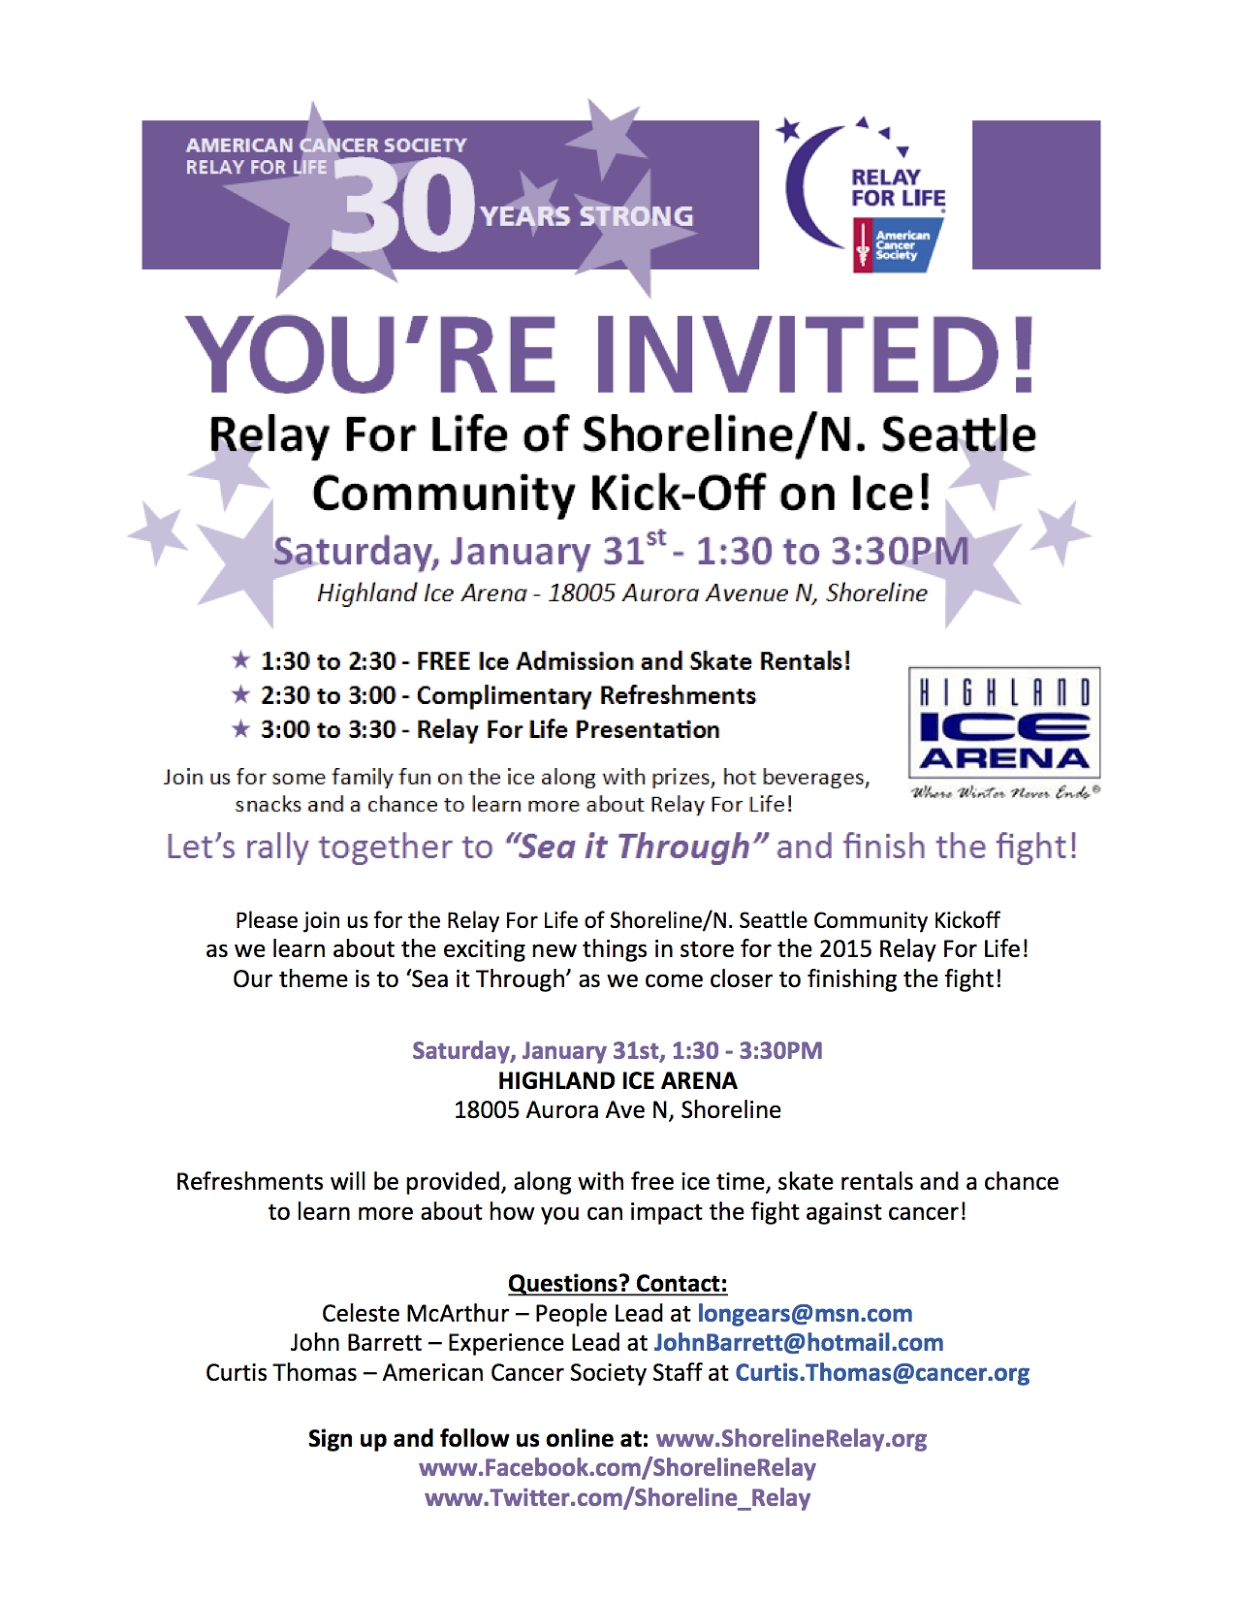 10 Unique Relay Life Event Theme Ideas shoreline area news relay for life kick off at highland ice area jan 31 1 2020